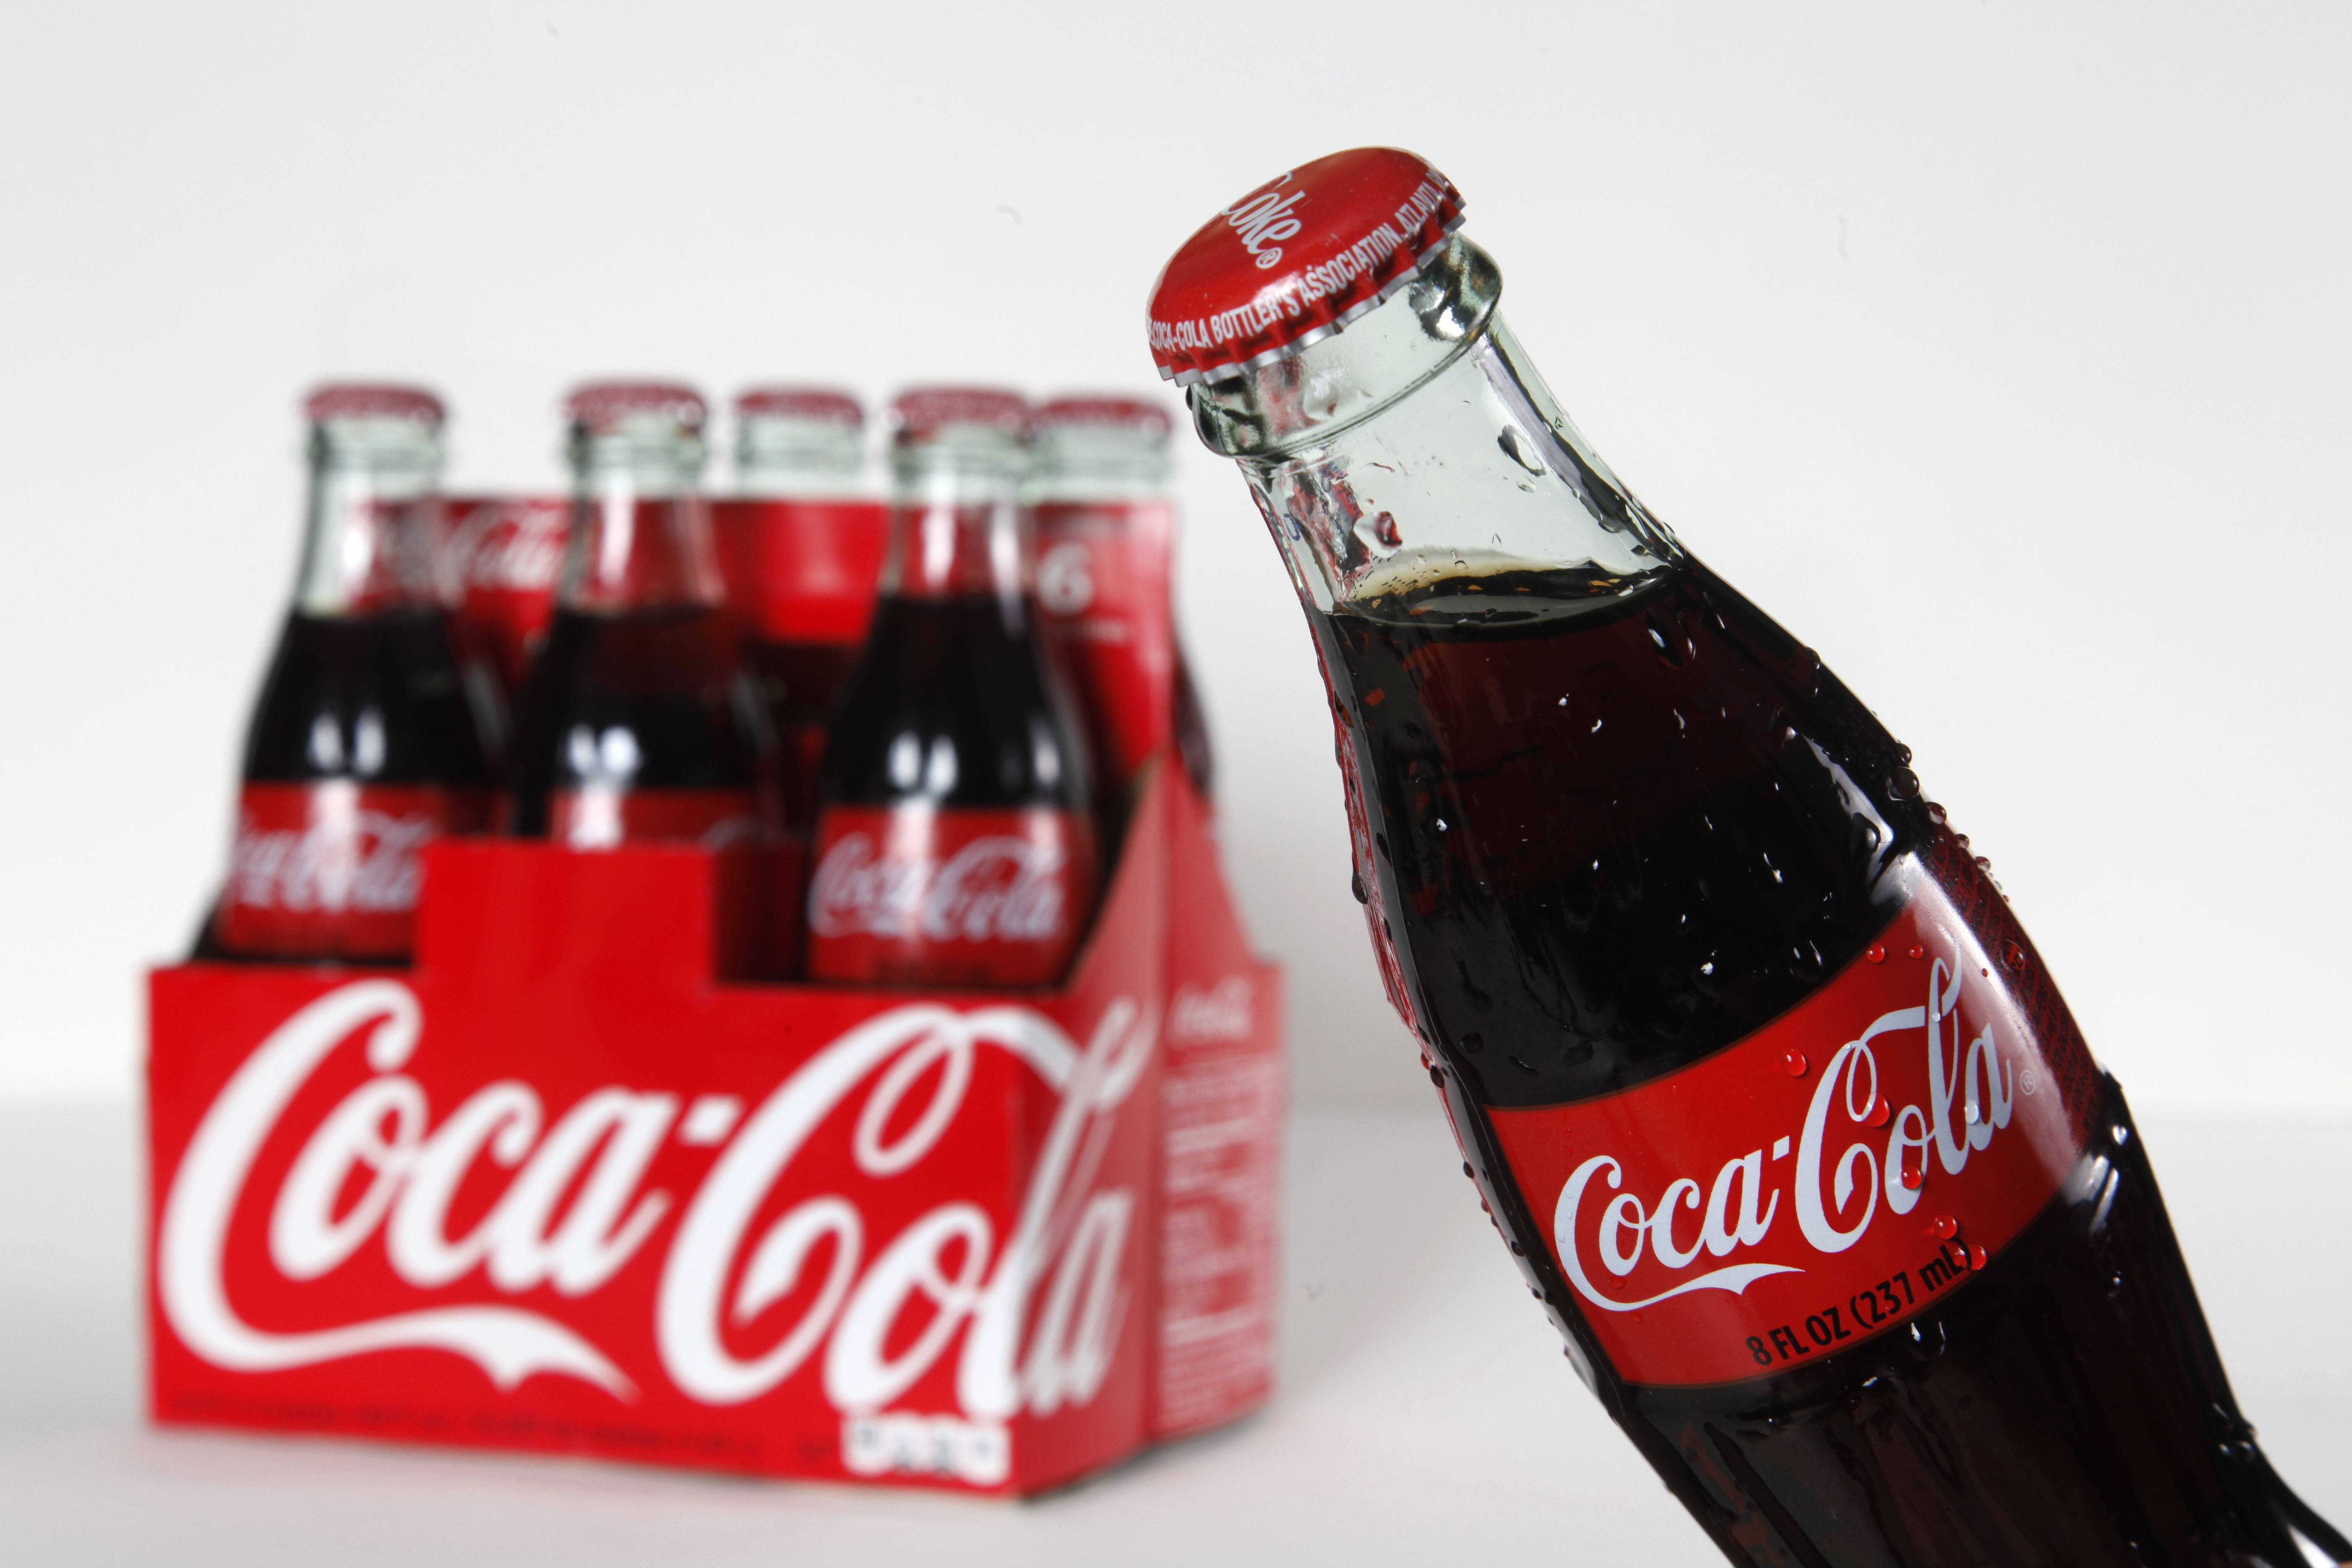 Coca-Cola sold more drinks in the first quarter, but it wasn't because of soda. The world's biggest beverage maker said Tuesday that its global sales volume for soda fell for first time in at least a decade. The drop was offset by stronger sales of noncarbonated drinks such as juice, and overall volume rose 2 percent.